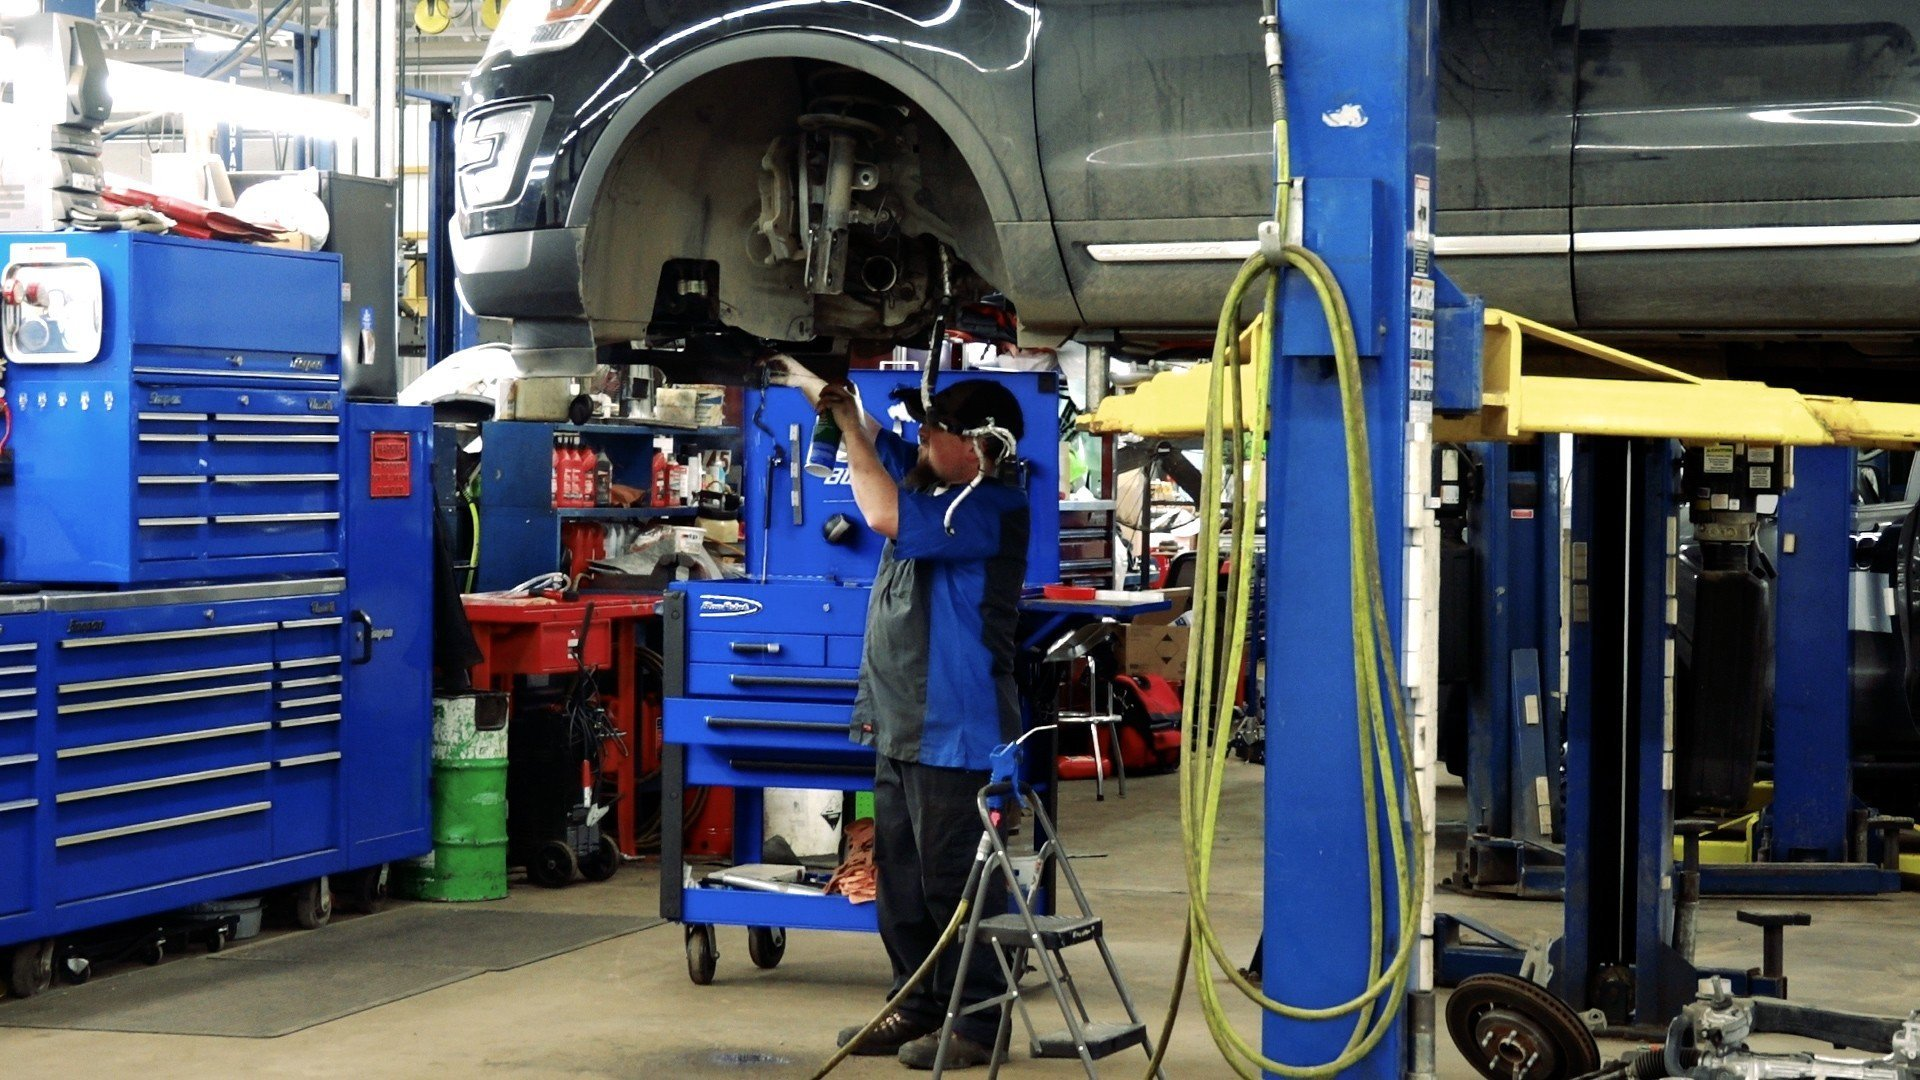 Get your career started in automotive tech at Eide!